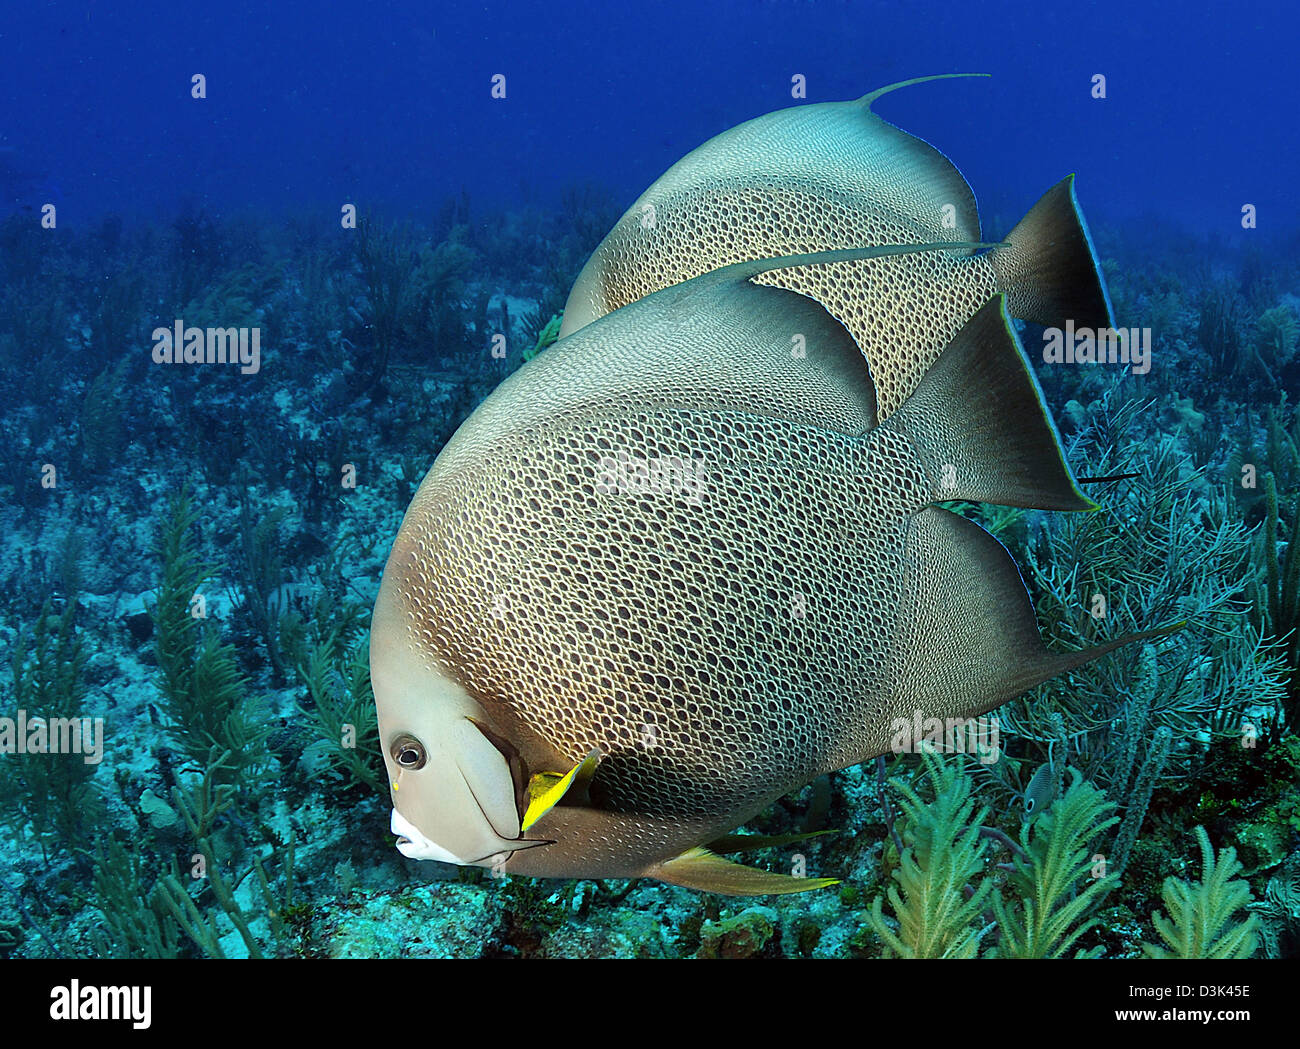 A pair of Gray Angelfish on a Caribbean reef. - Stock Image